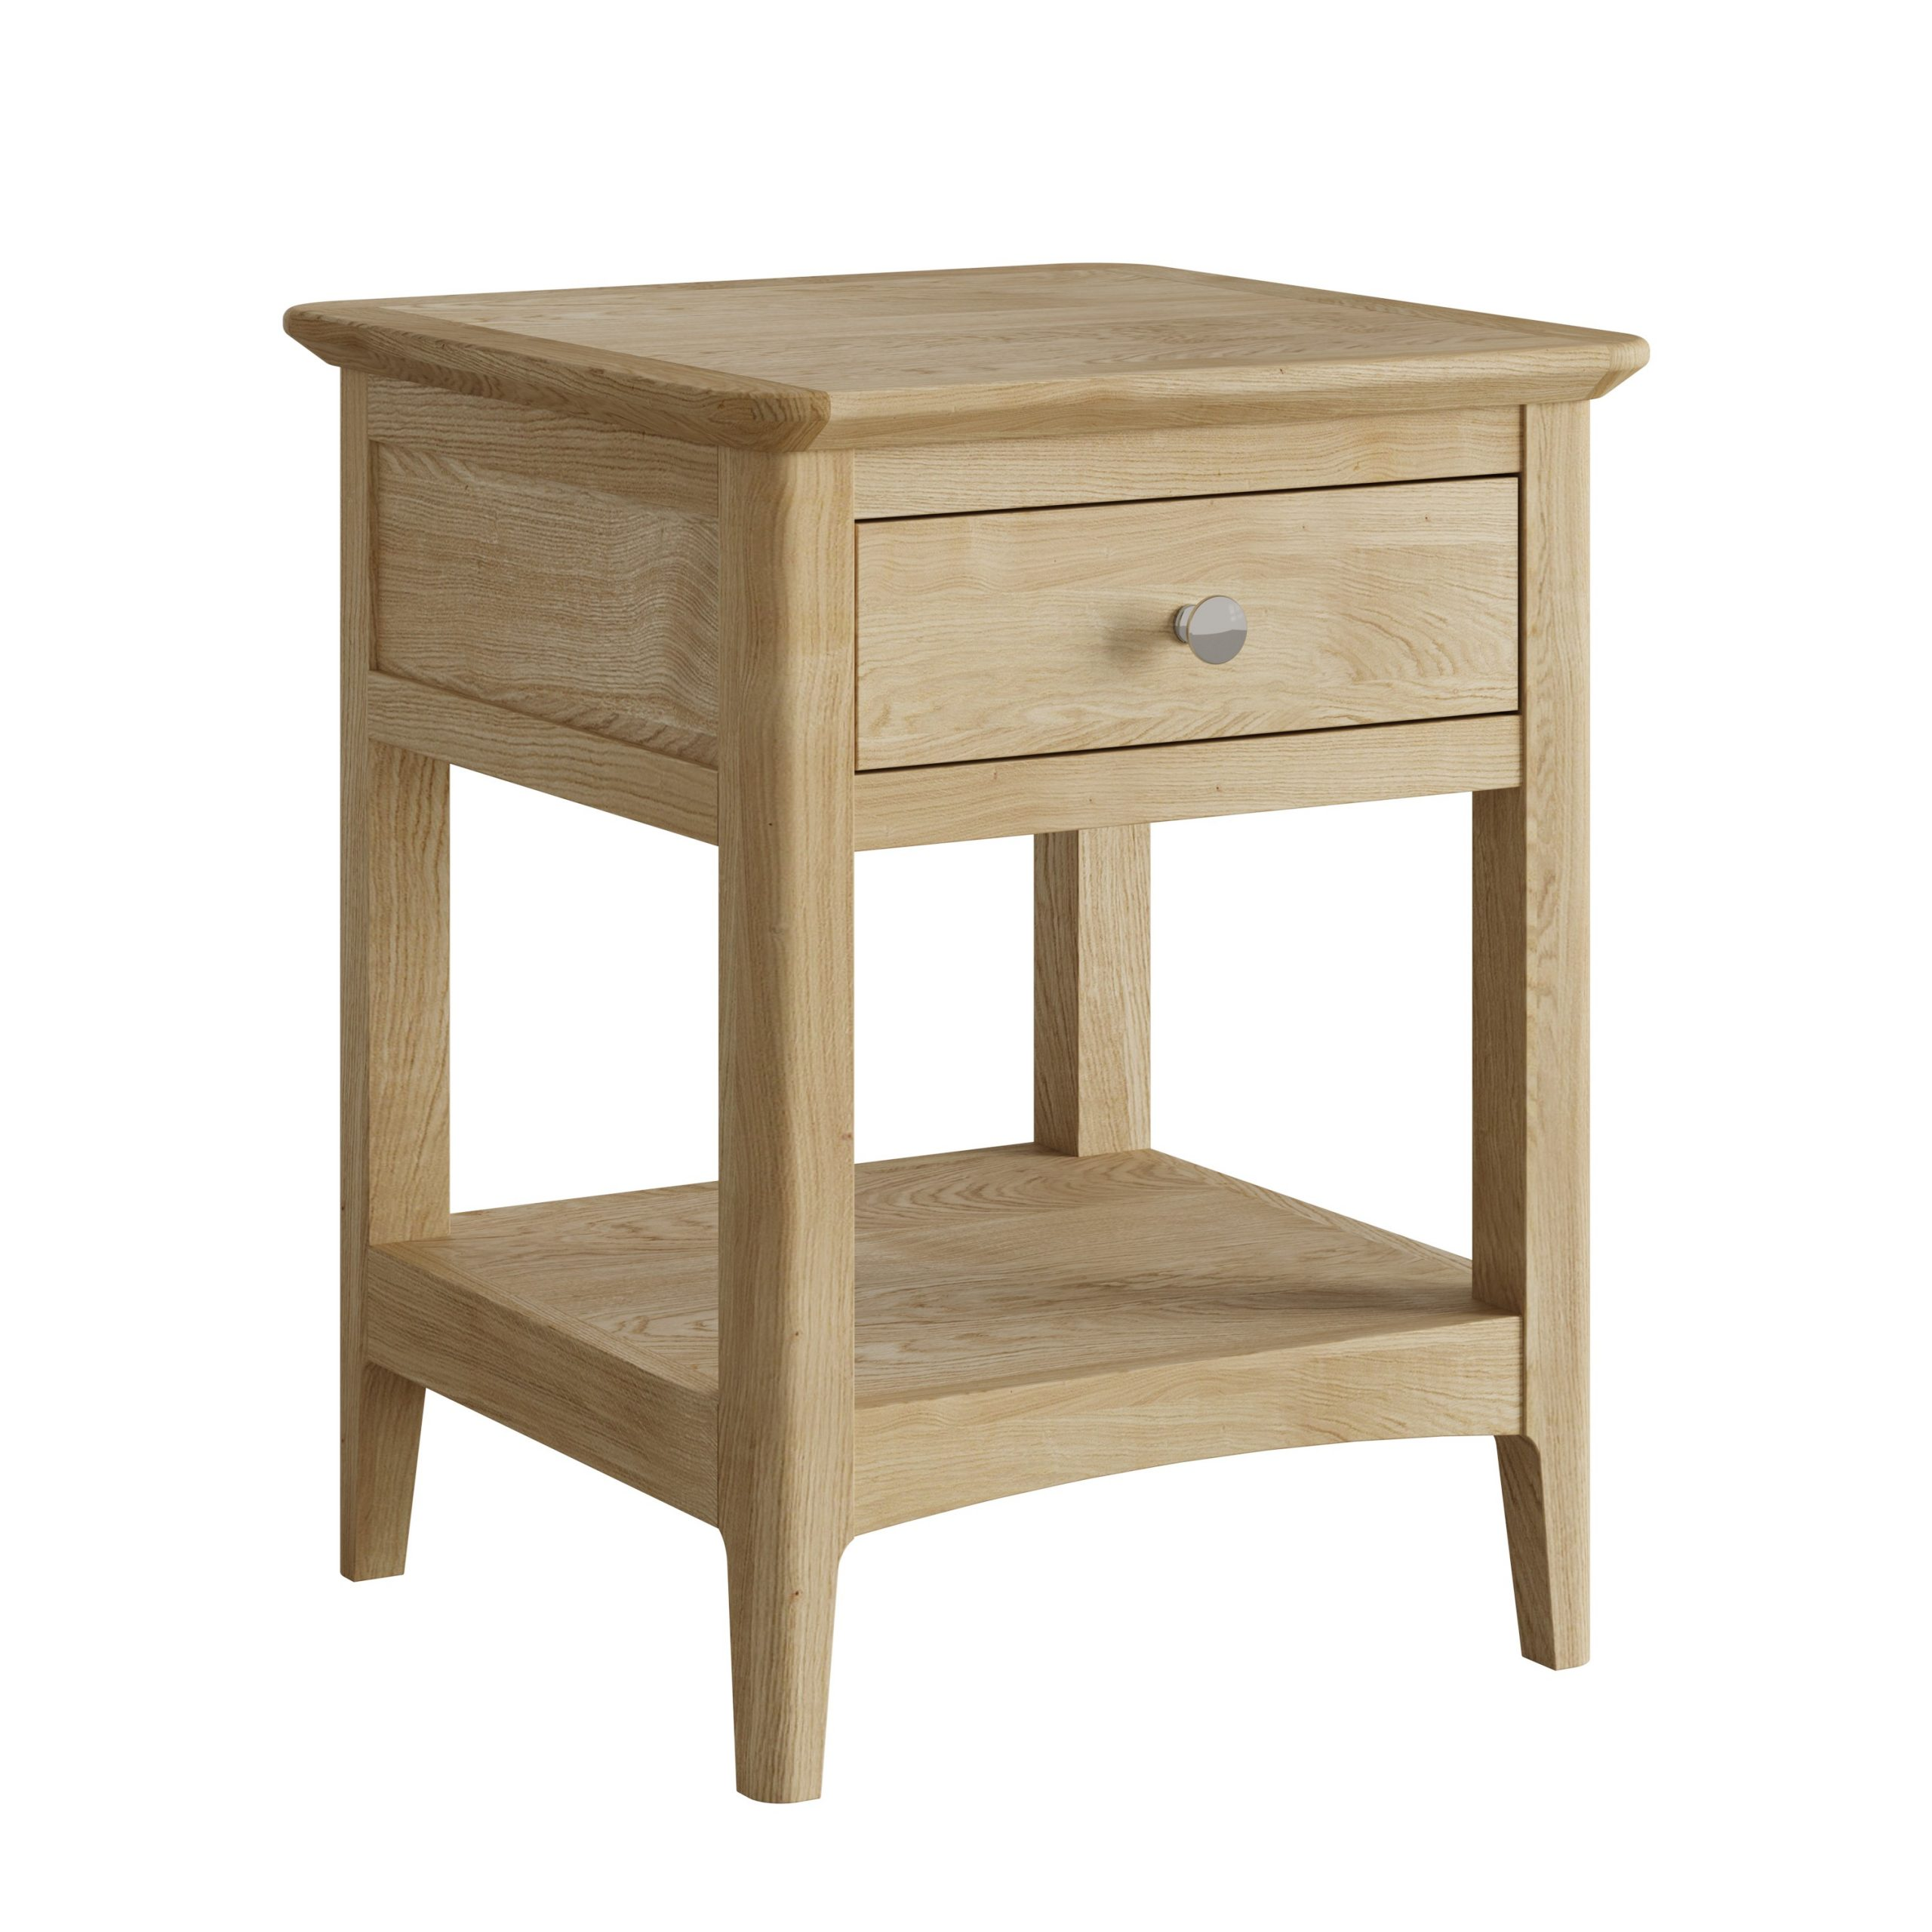 Oak Lamp Table or Bedside with Drawer - Our Price - Only £199